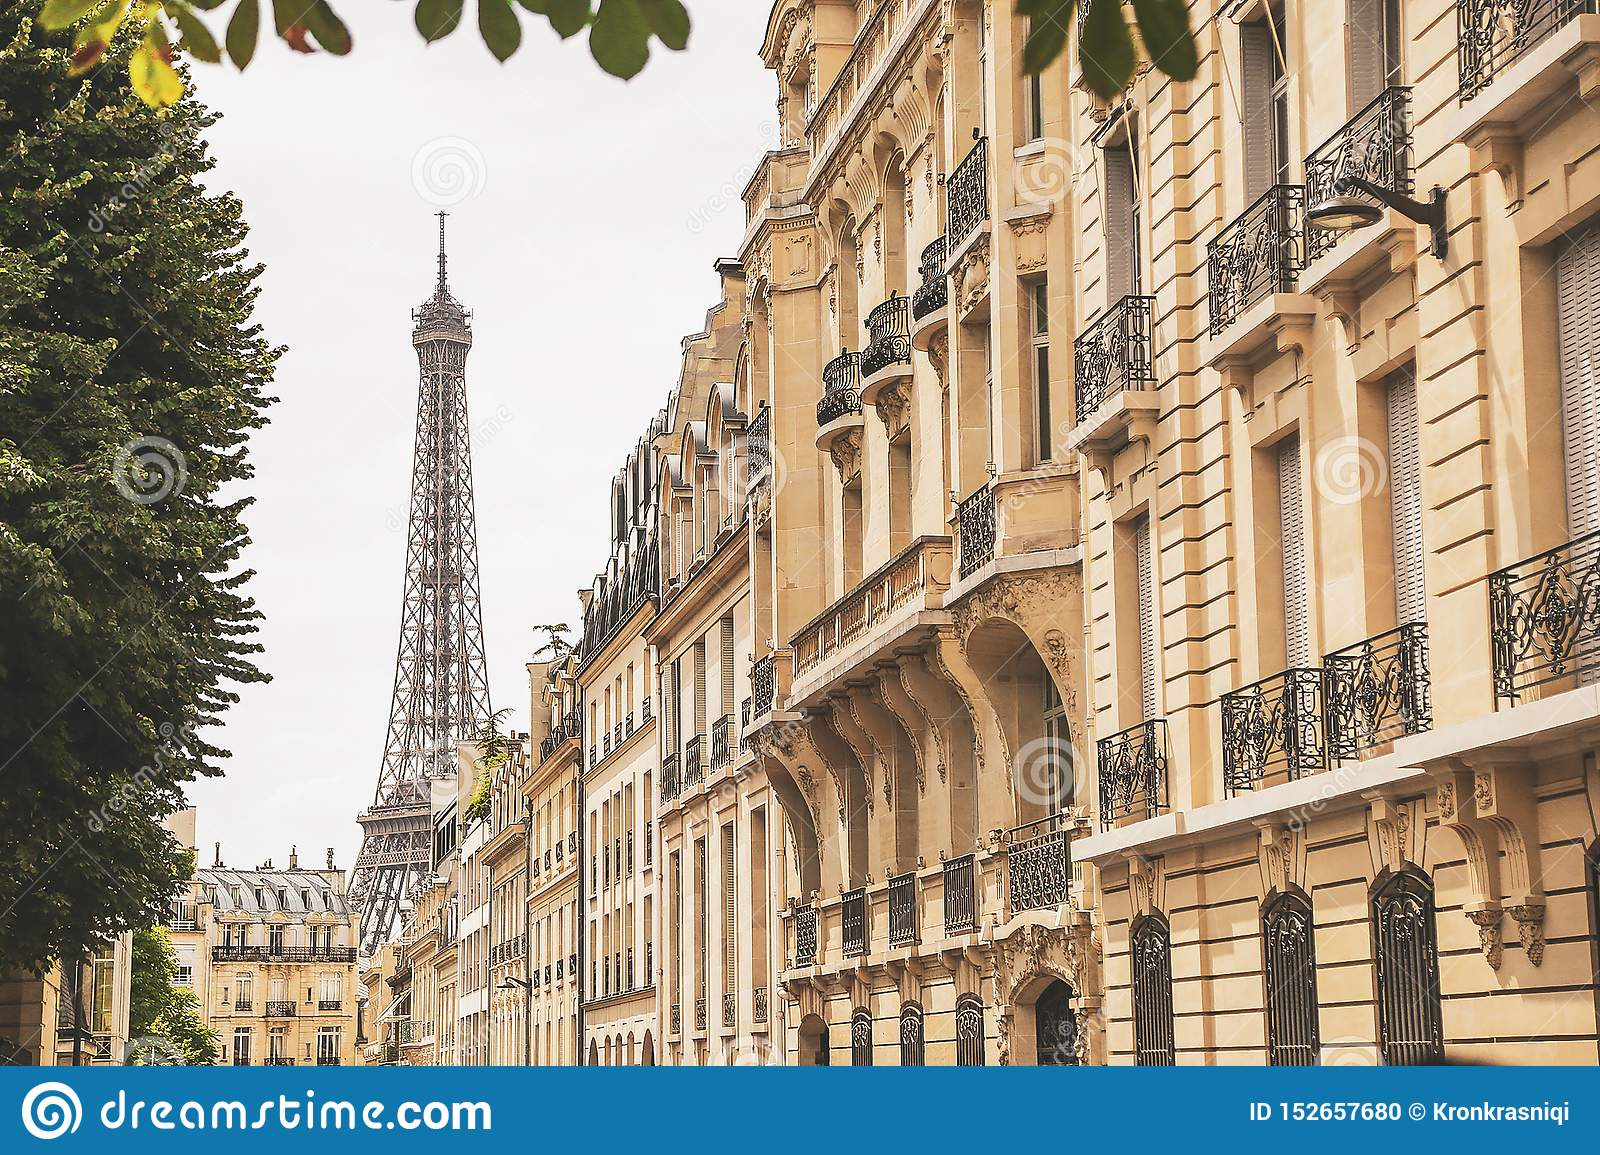 Eiffel Tower In Paris Wallpaper Stock Photo Image Of Background Prints 152657680